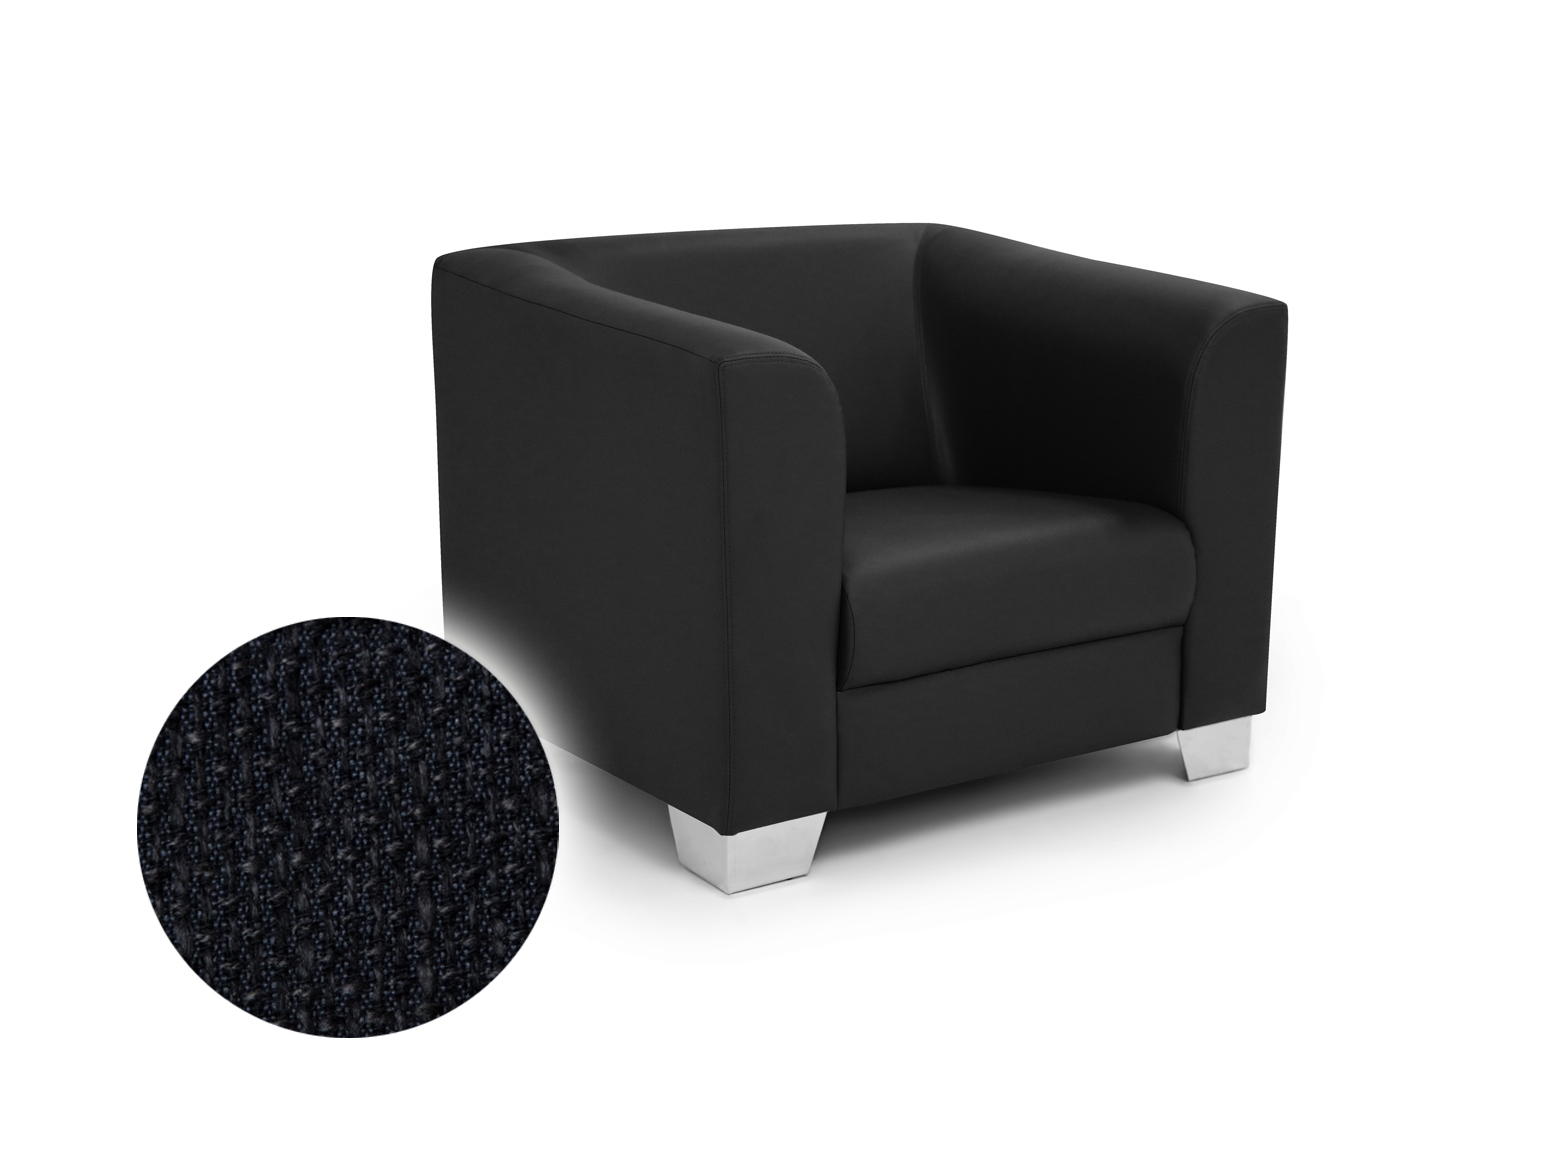 Lounge Sessel Berlin Chicago Sessel Berlin Schwarz Material Stoff